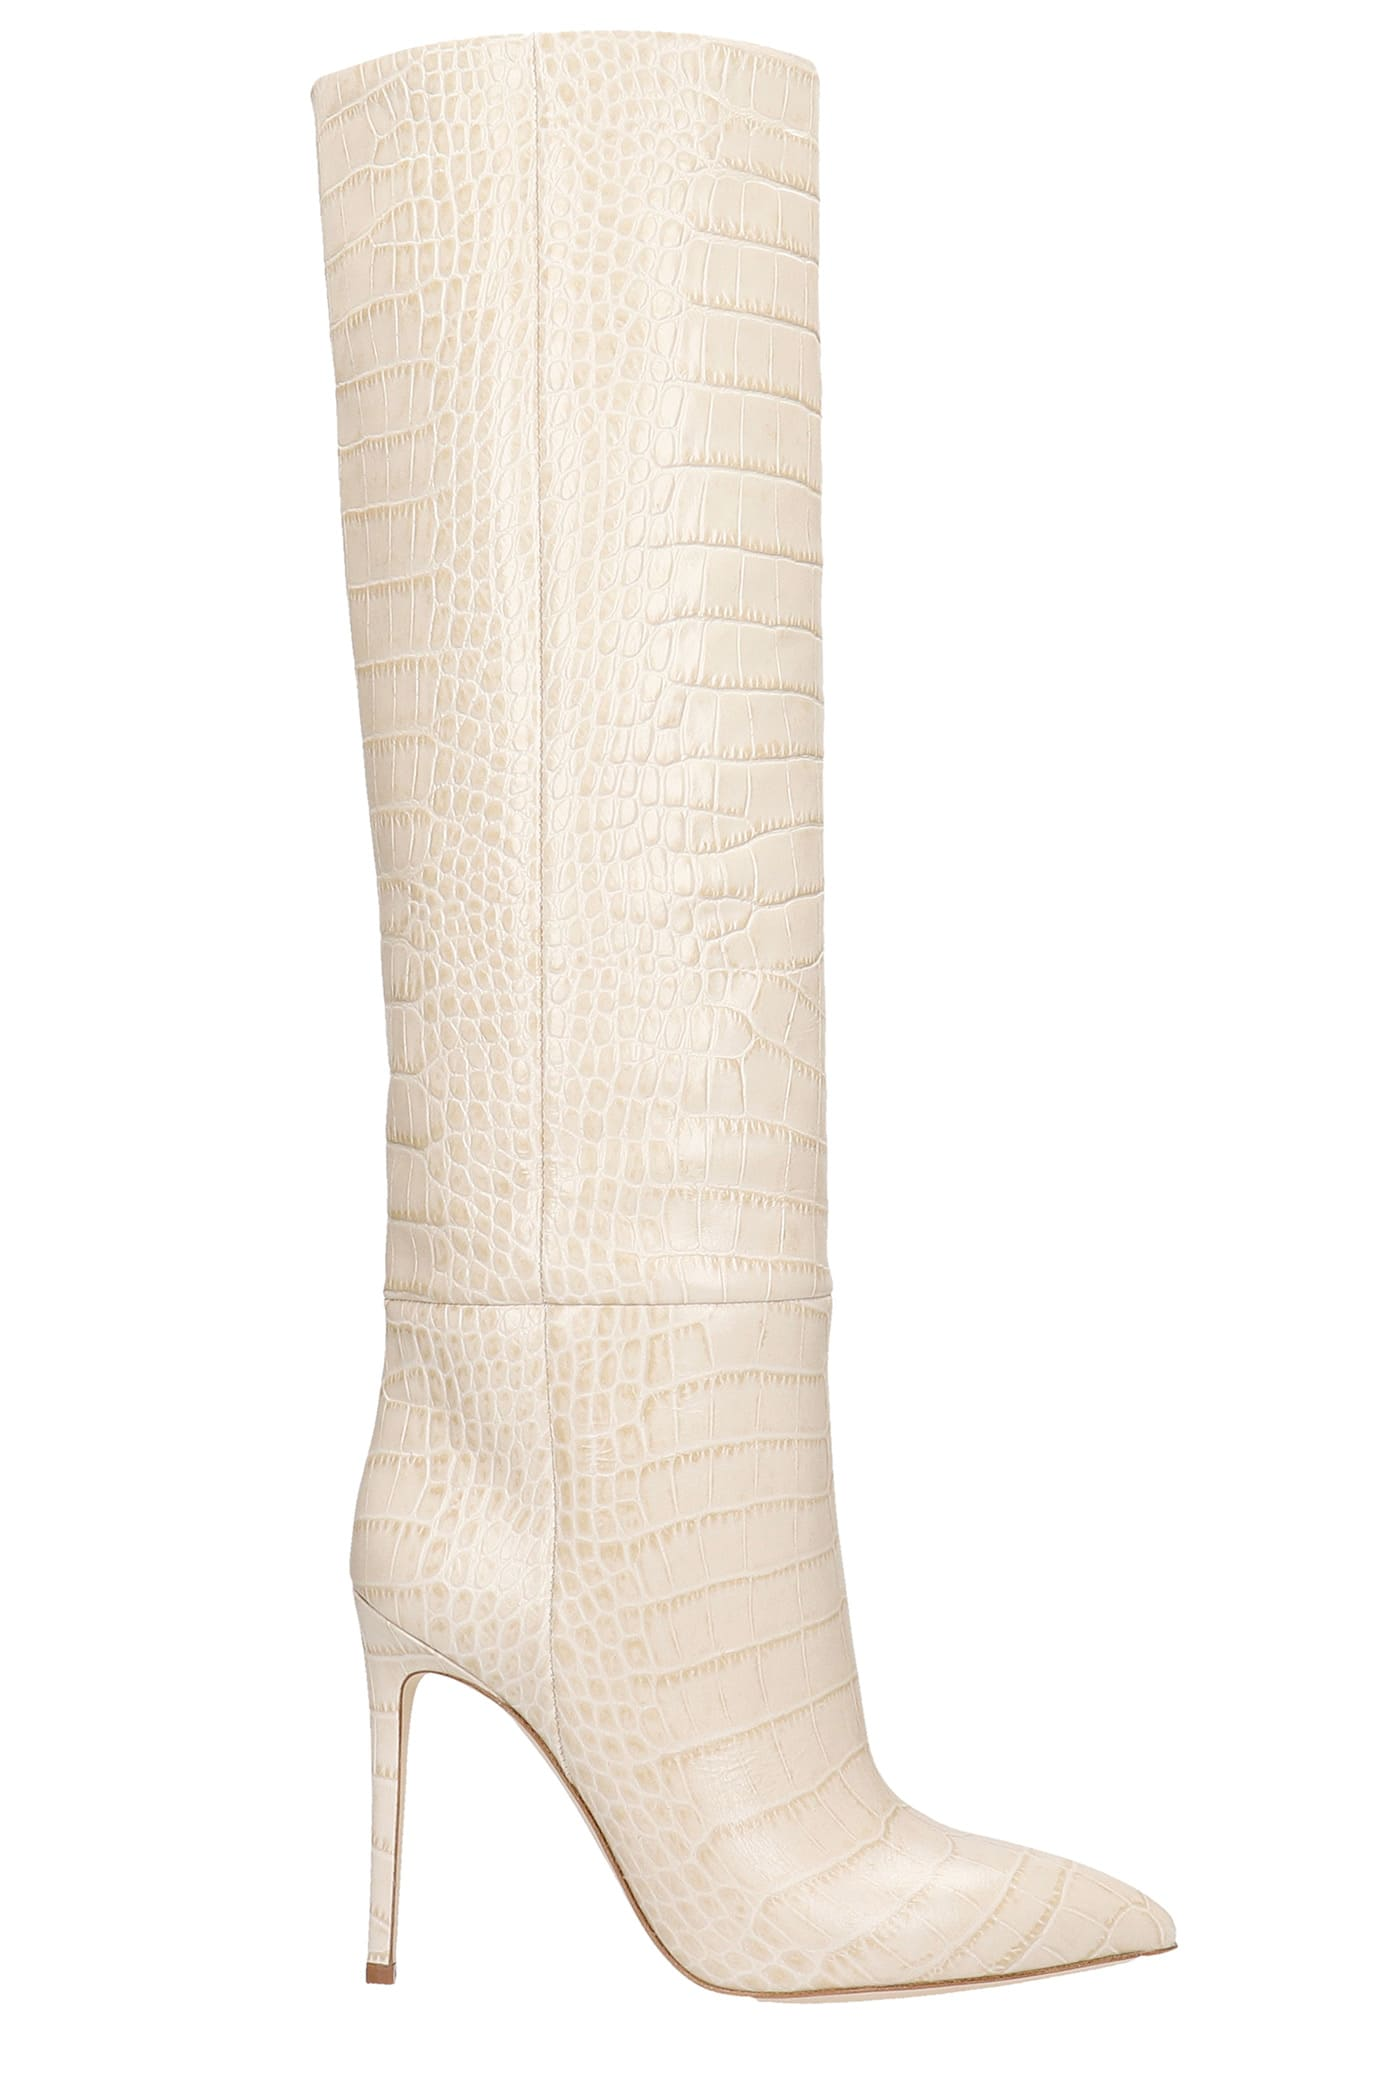 Paris Texas Leathers HIGH HEELS BOOTS IN BEIGE LEATHER